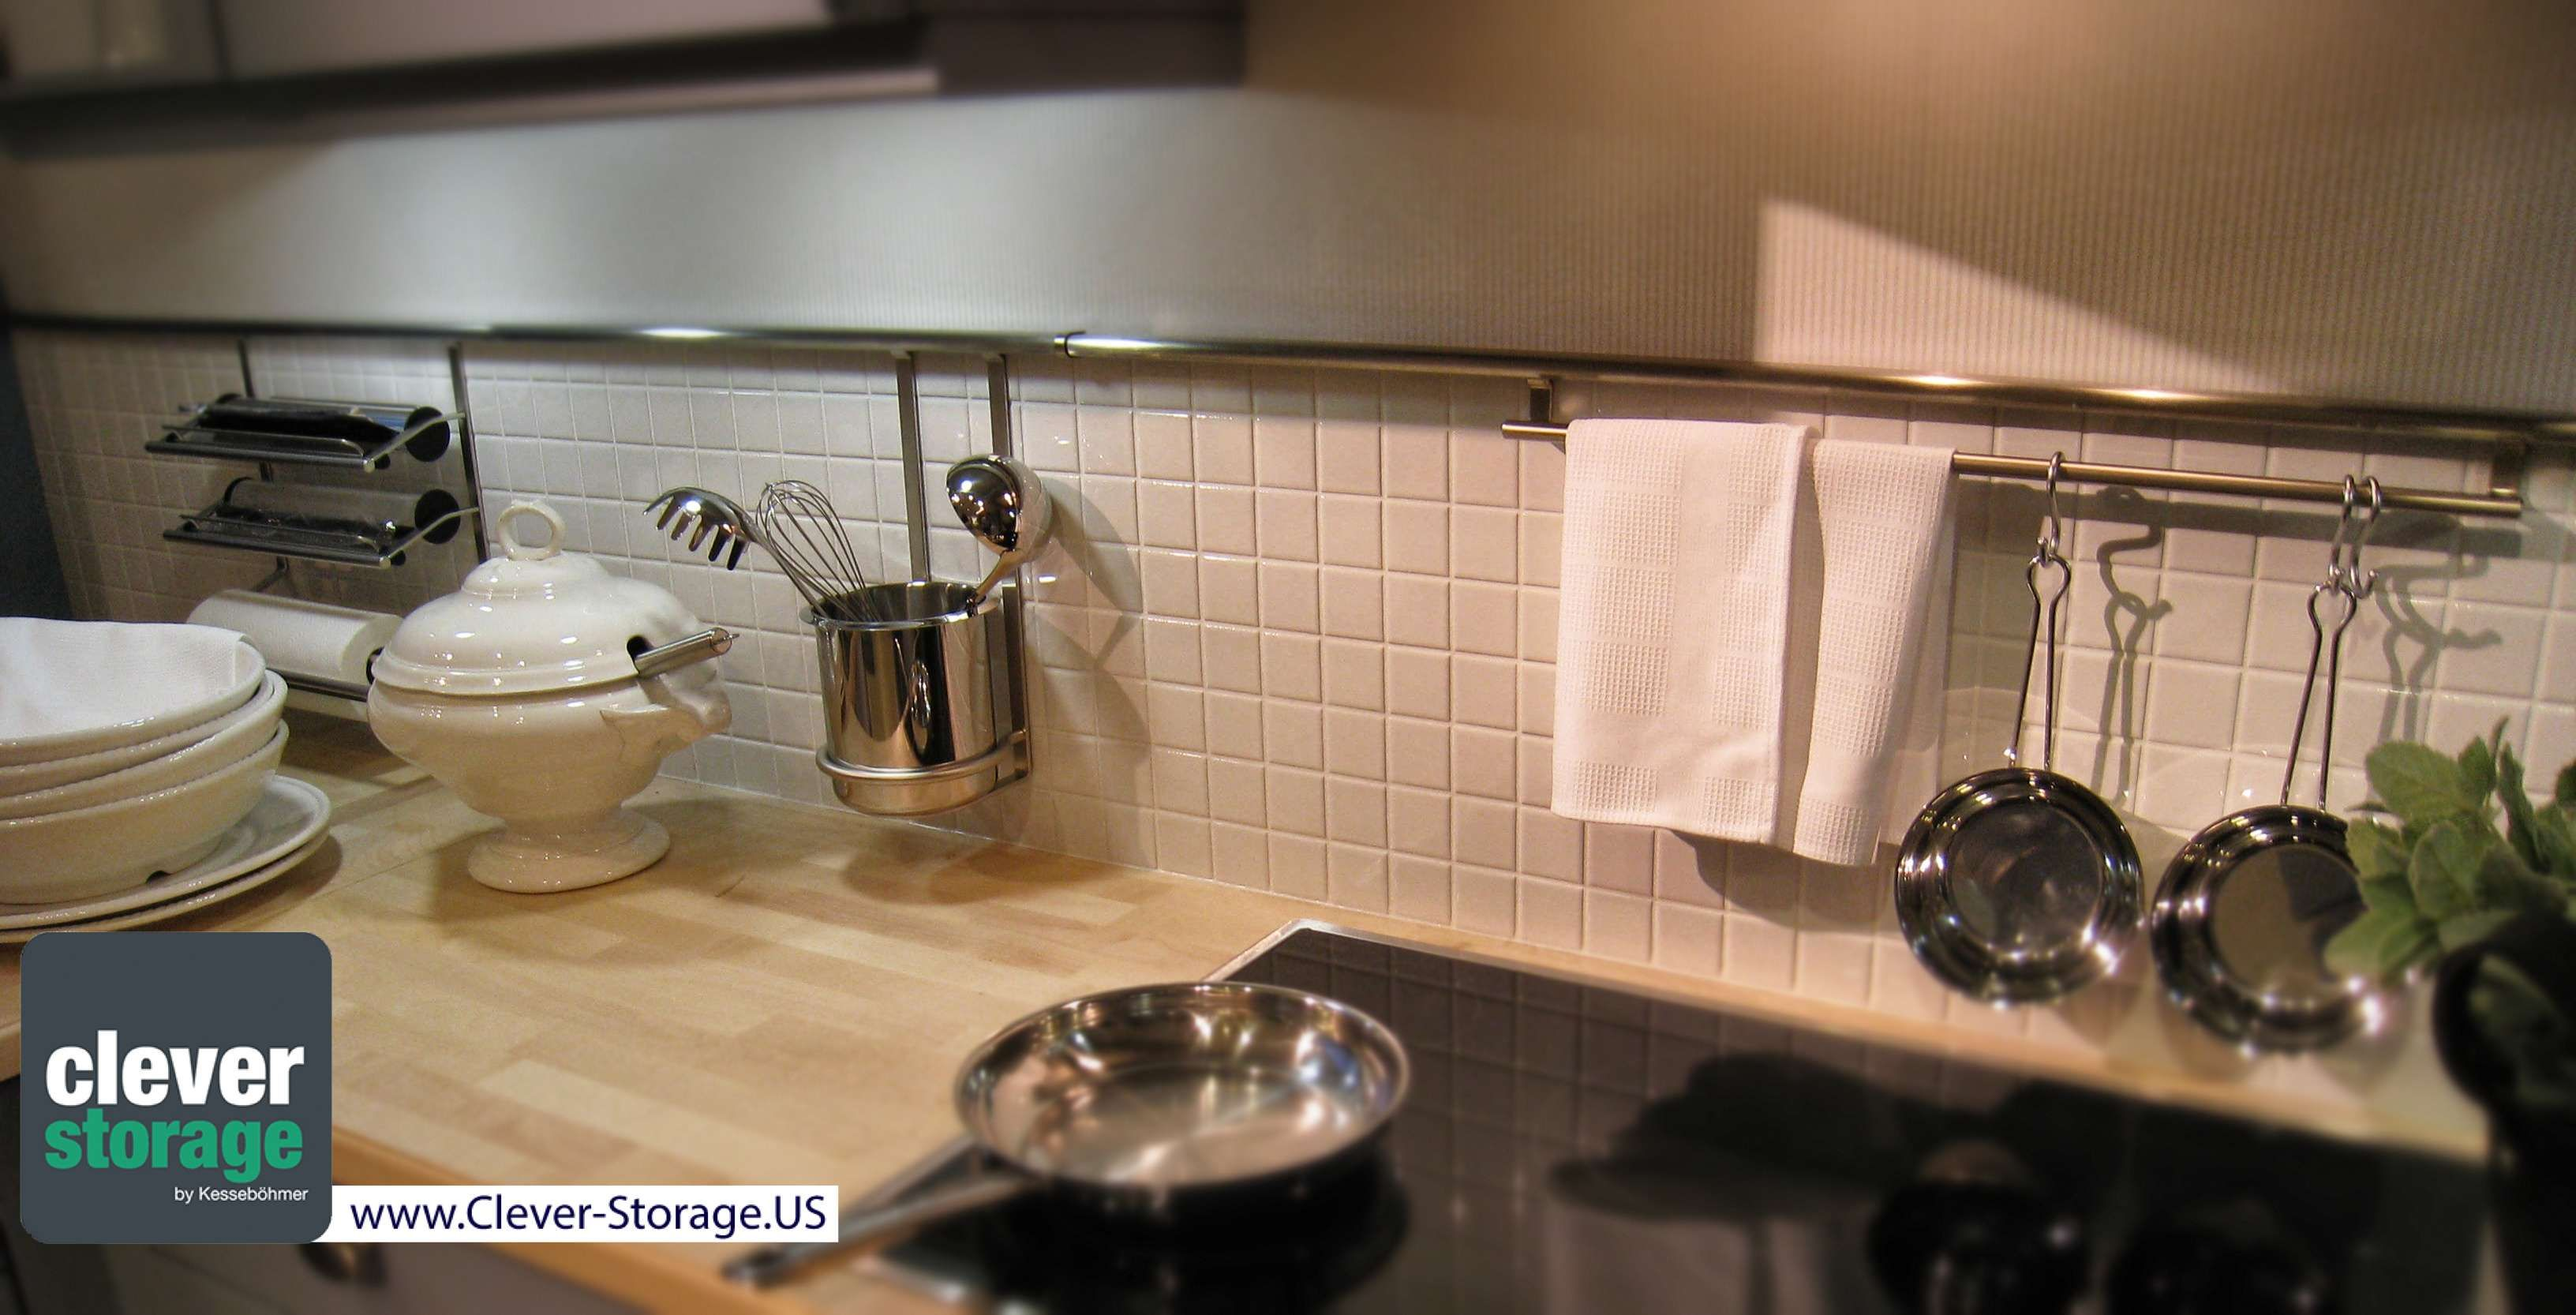 The linero backsplash is a great way to organize and keep things off